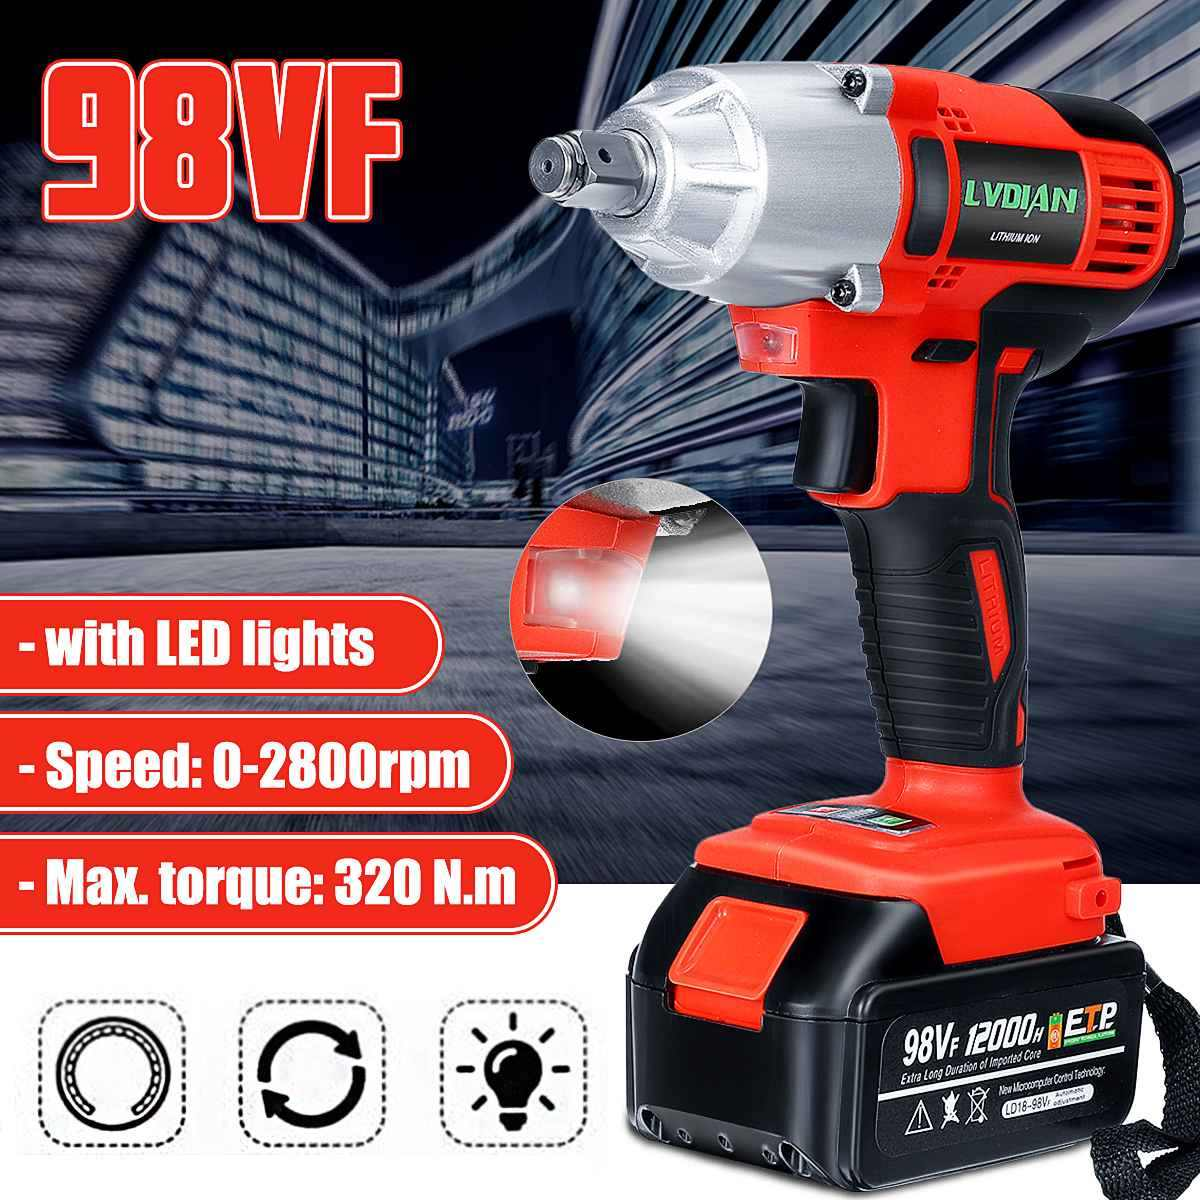 98VF 320NM 12000mAh Cordless Electric Impact Wrench Drill Electric Screwdriver Gardening Home Tools